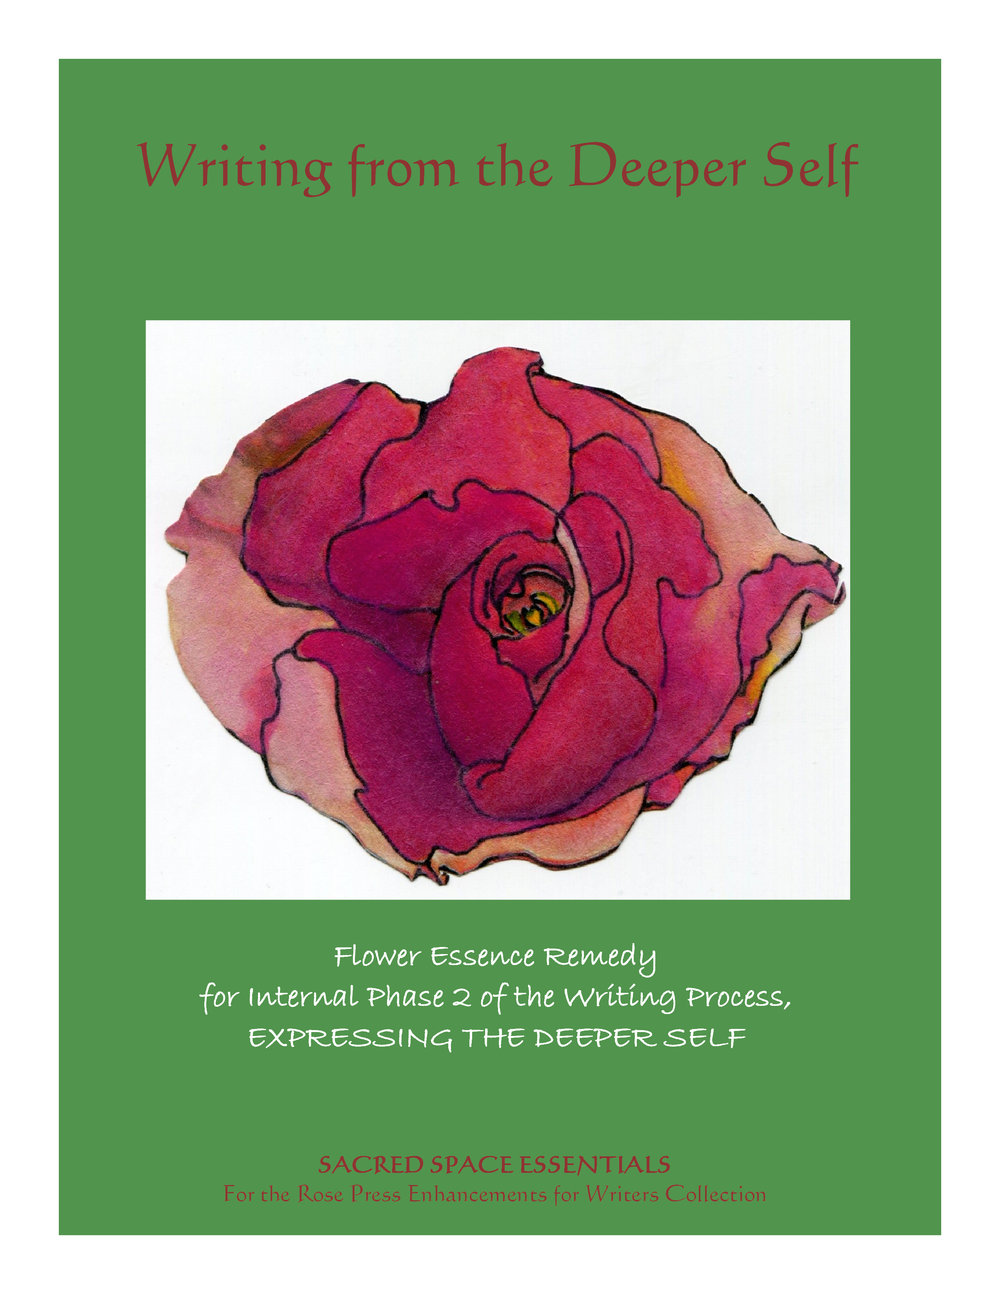 Flower essence rose #2, Writing   from the Deeper Self (with description).JPG